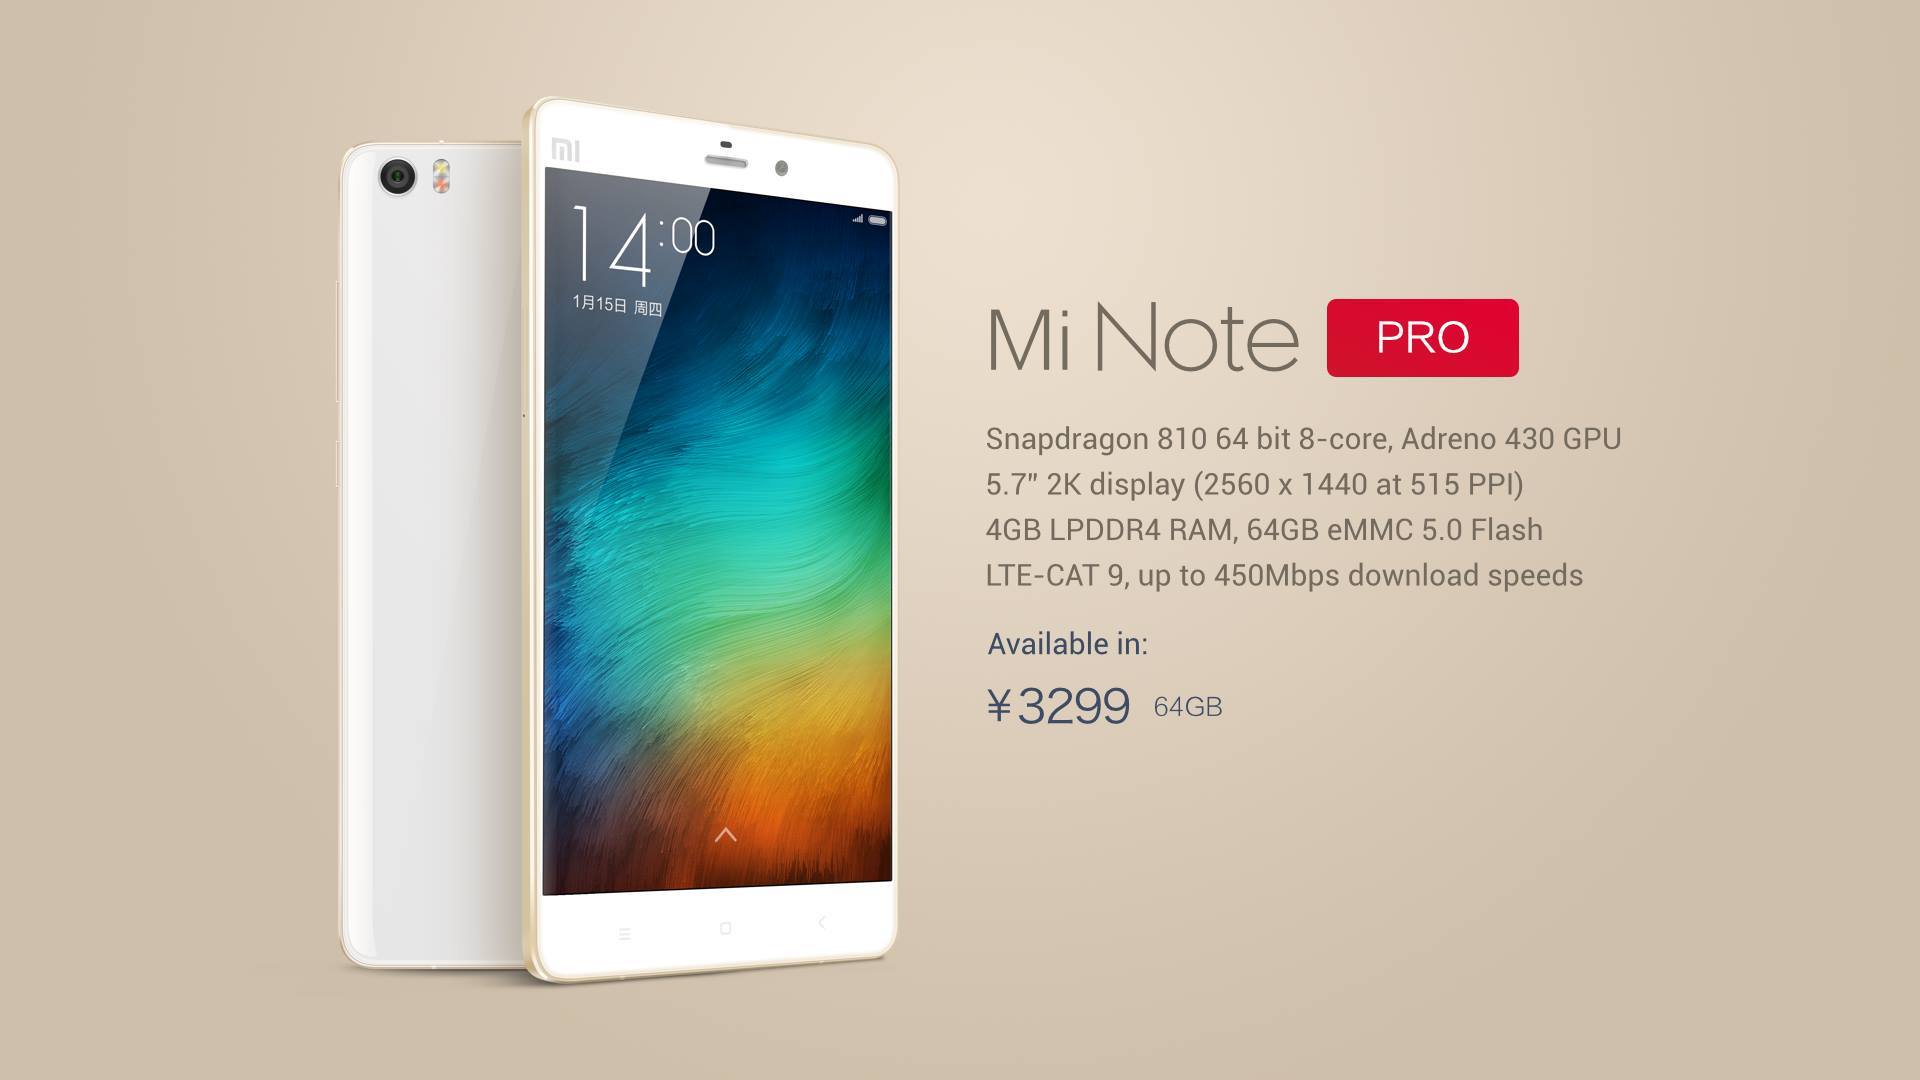 xiaomi-mi-note-pro-galaxy-note-4-value